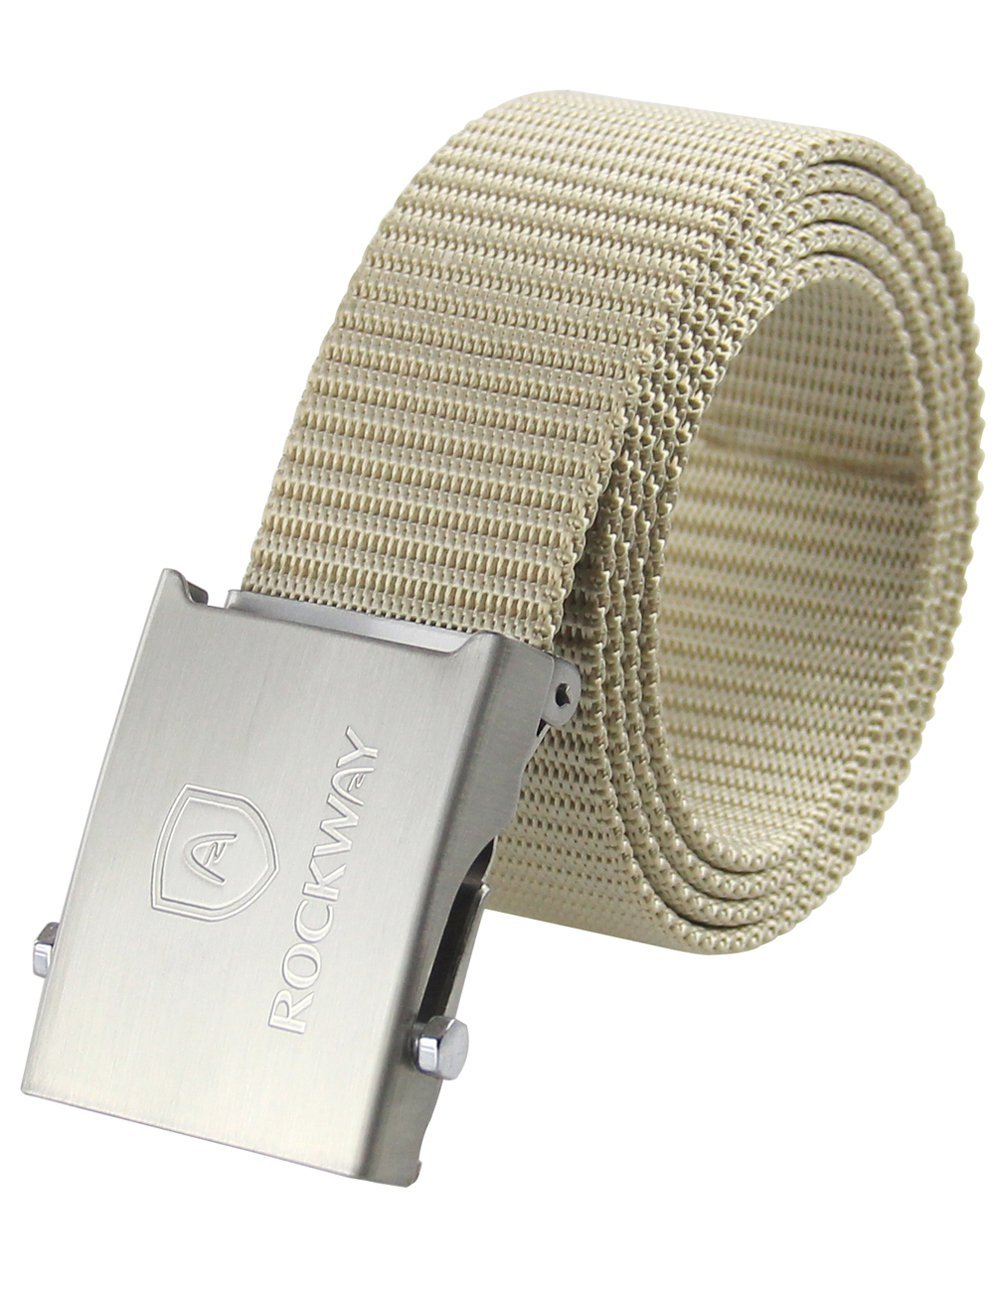 RockWay Hard Nylon with Stainless Steel Buckle Automatic Belt for Hunting (Khaki) (X-large/135cm)